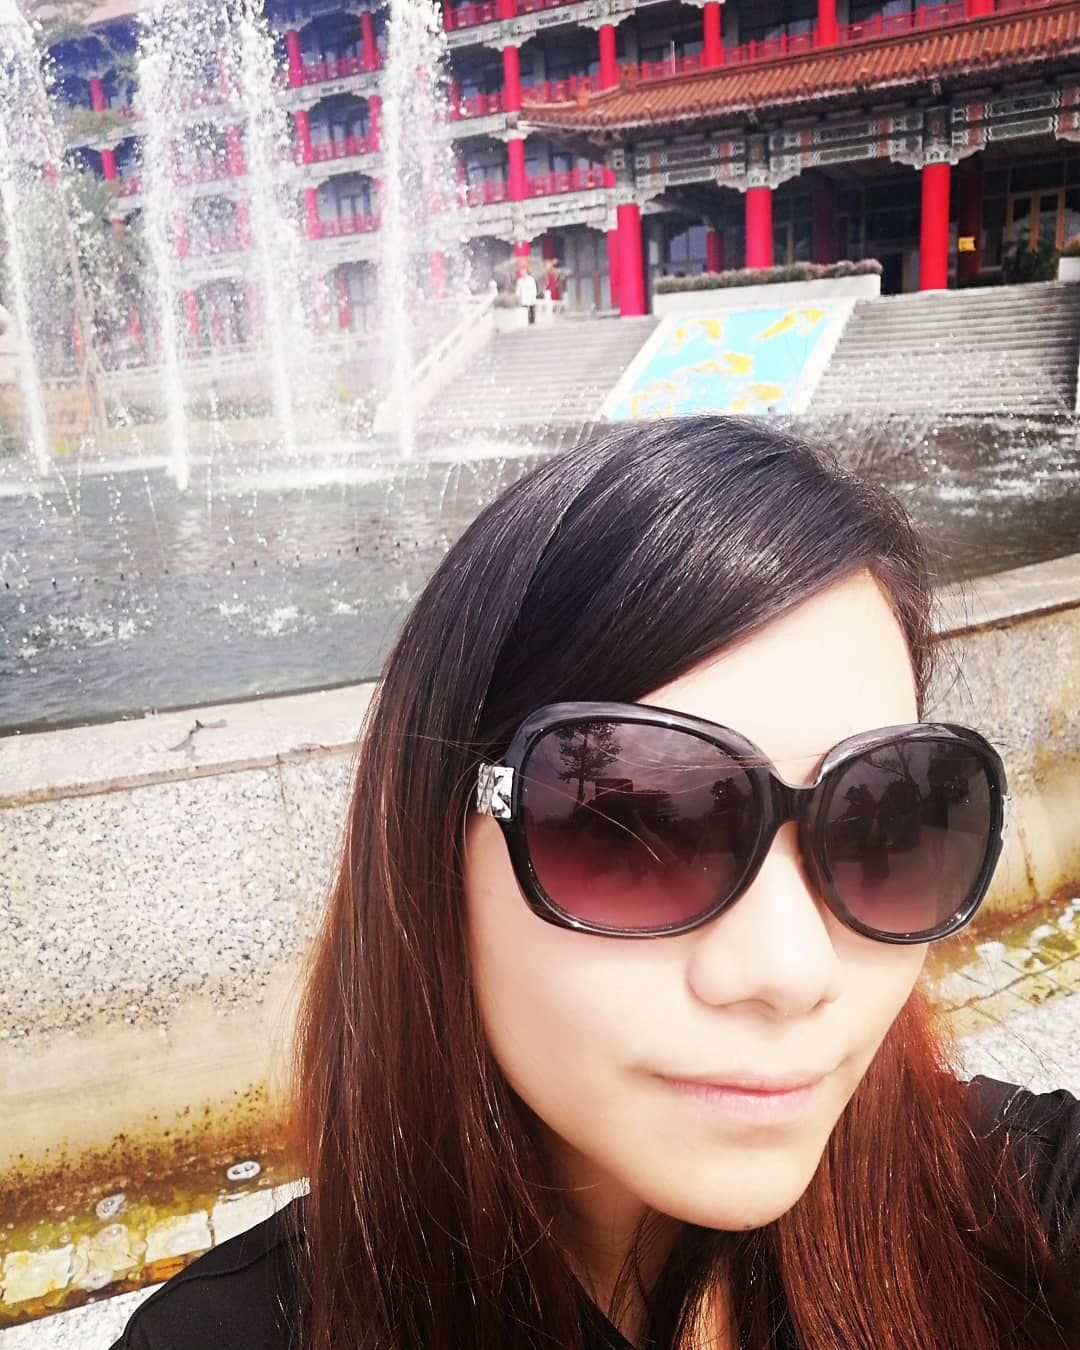 Red and white . . . #style #building #look #love #girl #shades #streetstyle #rojo #happy #dailylook #shadow #amor #fountain #sun #hotel #sunny #estilo #sleepy #night #architecture #black #colors #red #pattern #trend #travel #kaohsiung